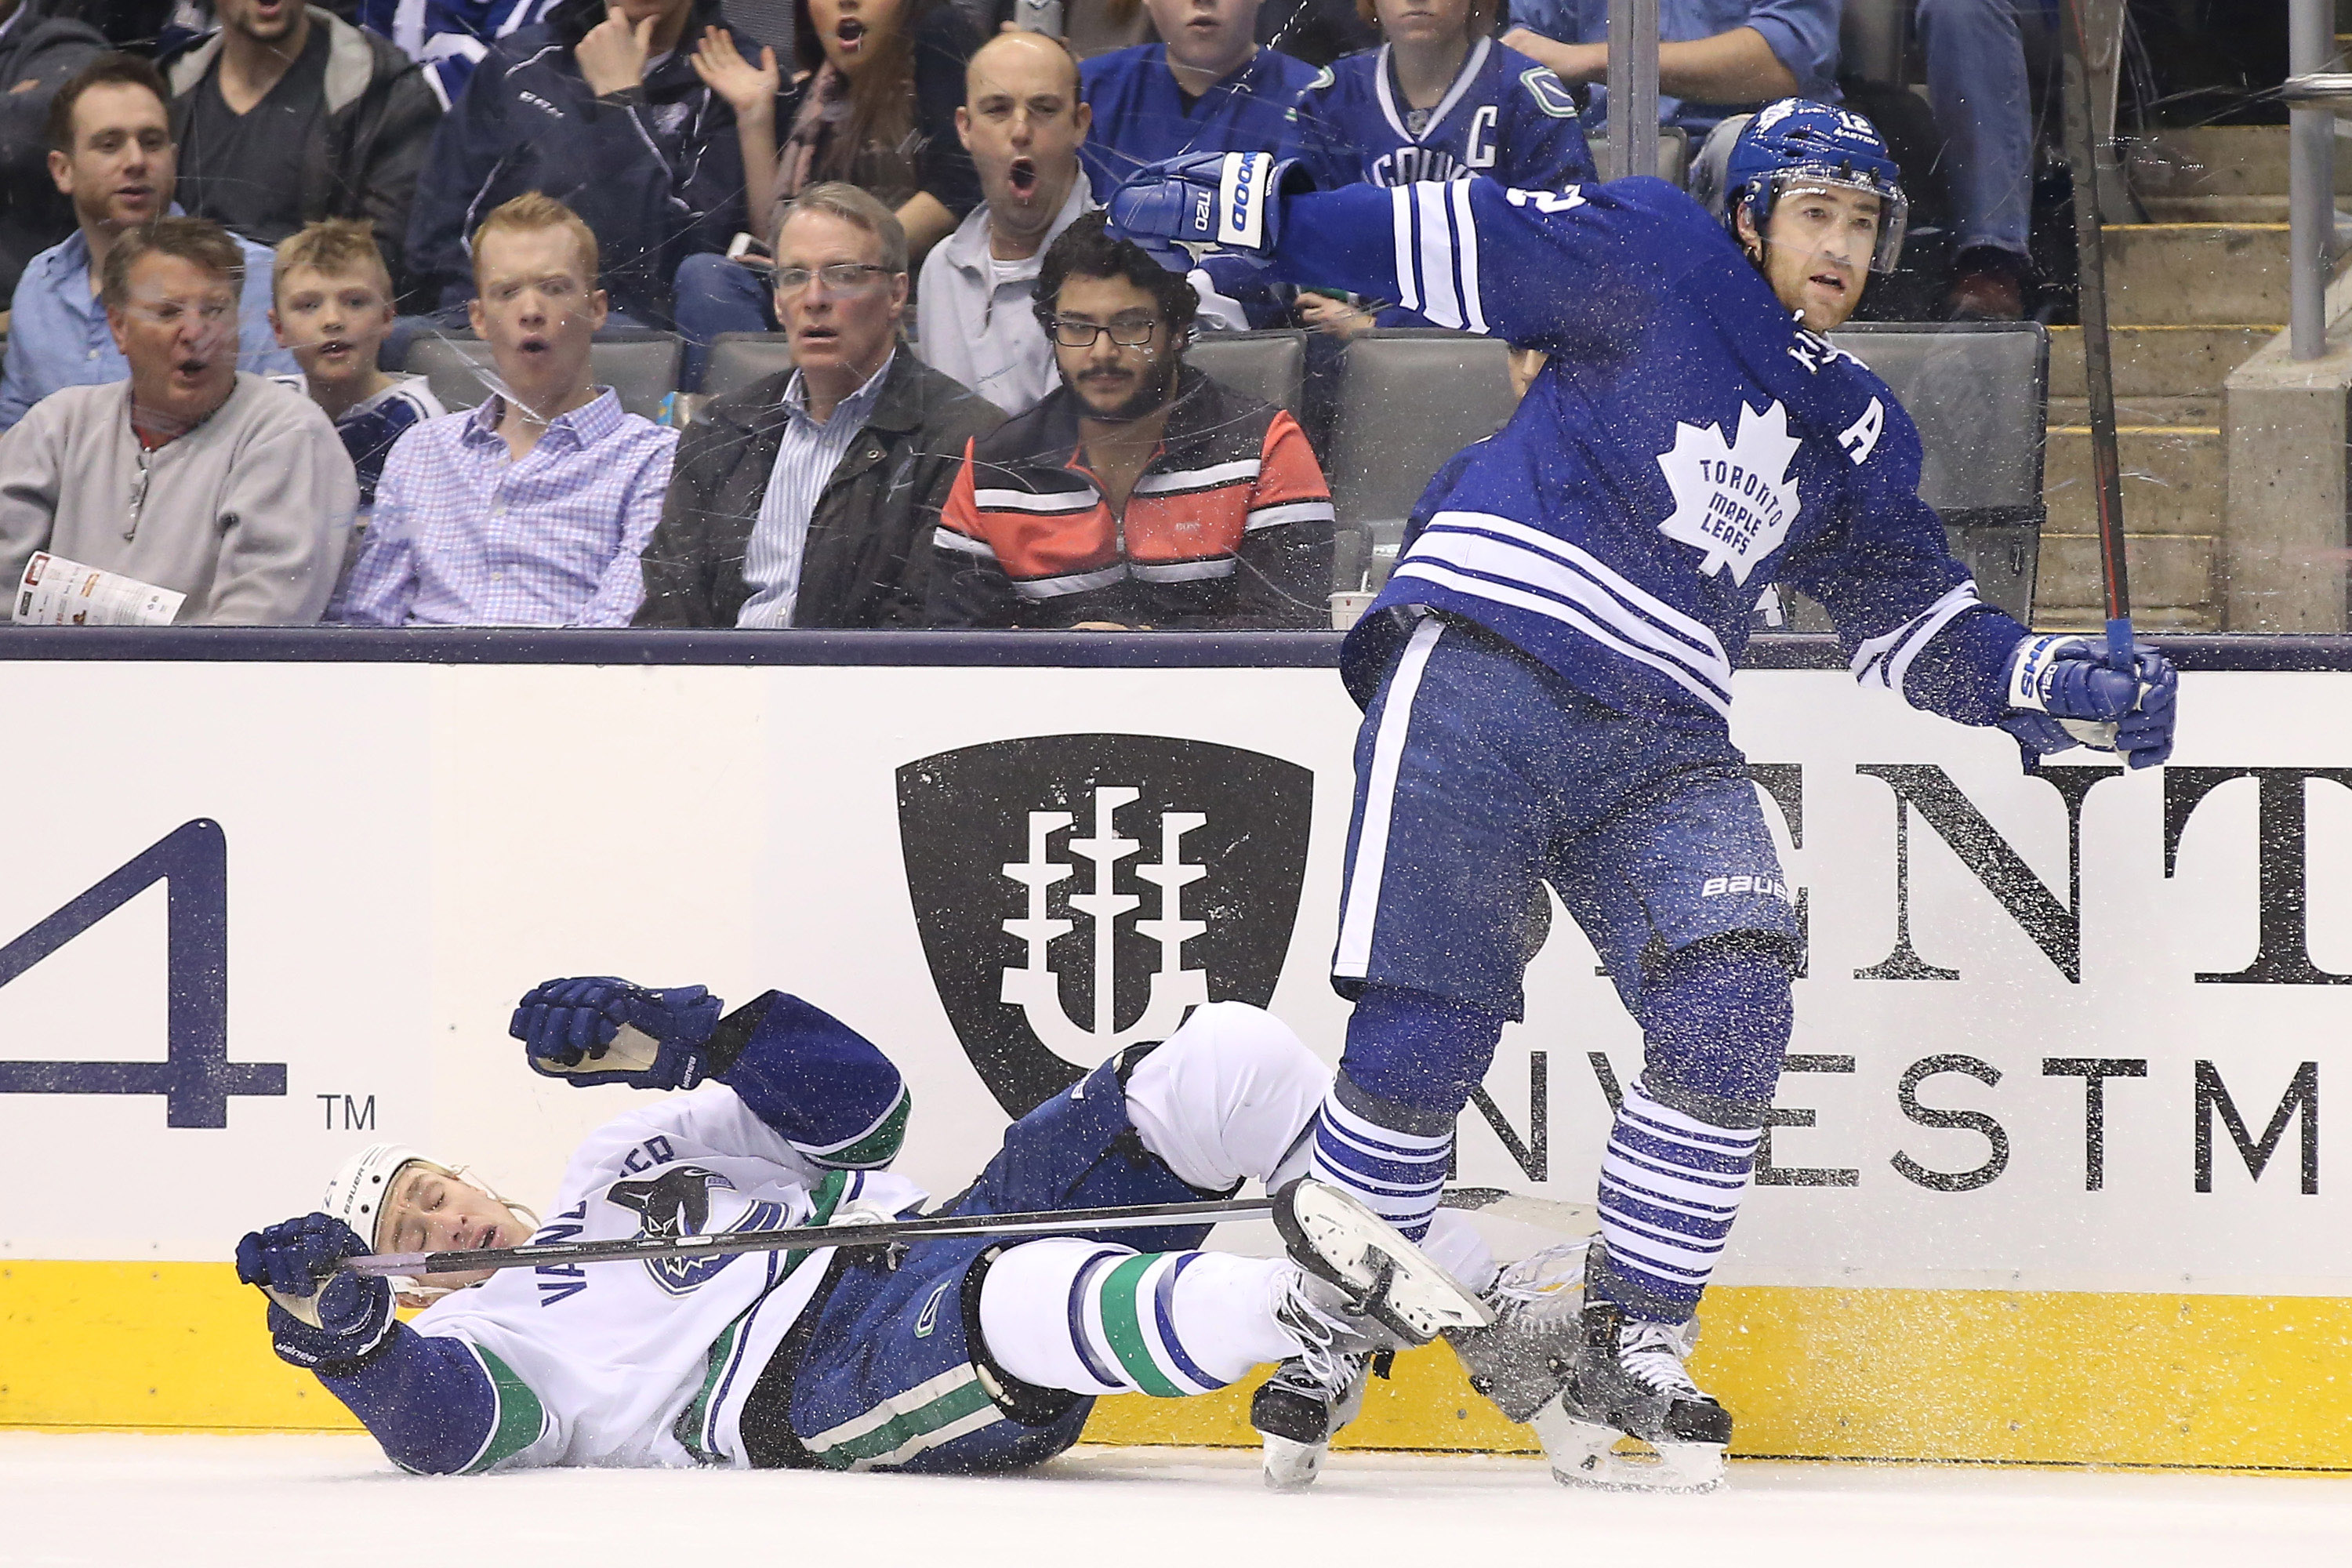 8255313-nhl-vancouver-canucks-at-toronto-maple-leafs